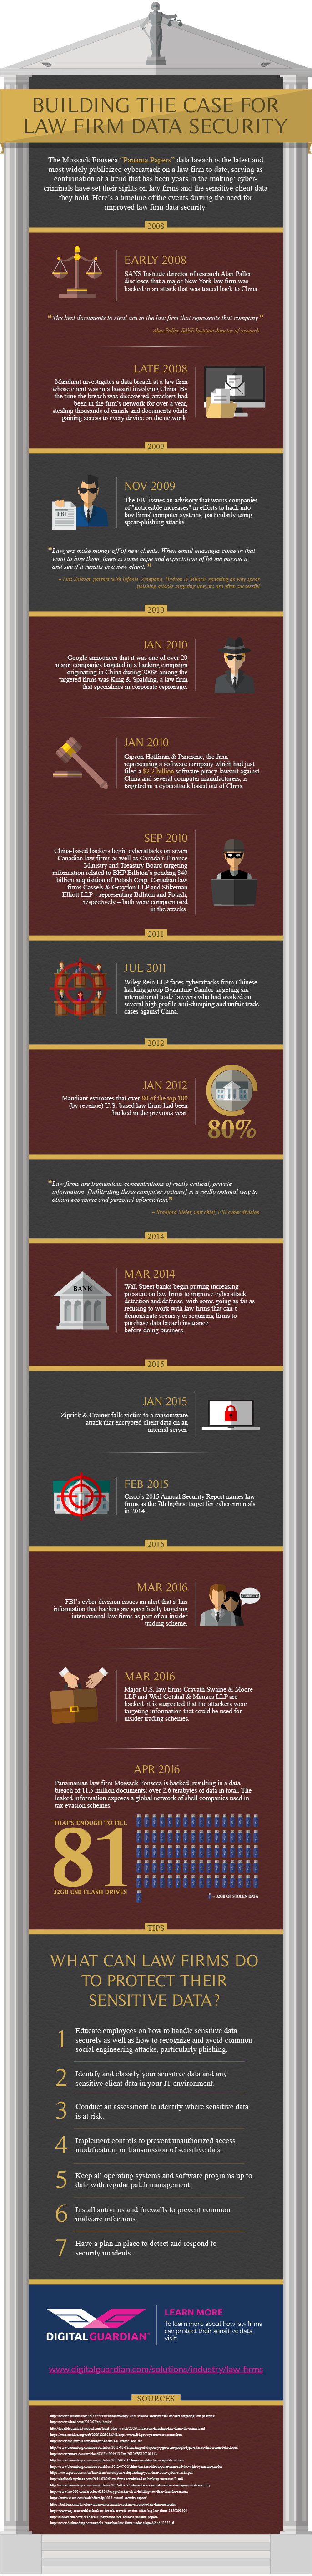 Law Firm Data Security Infographic